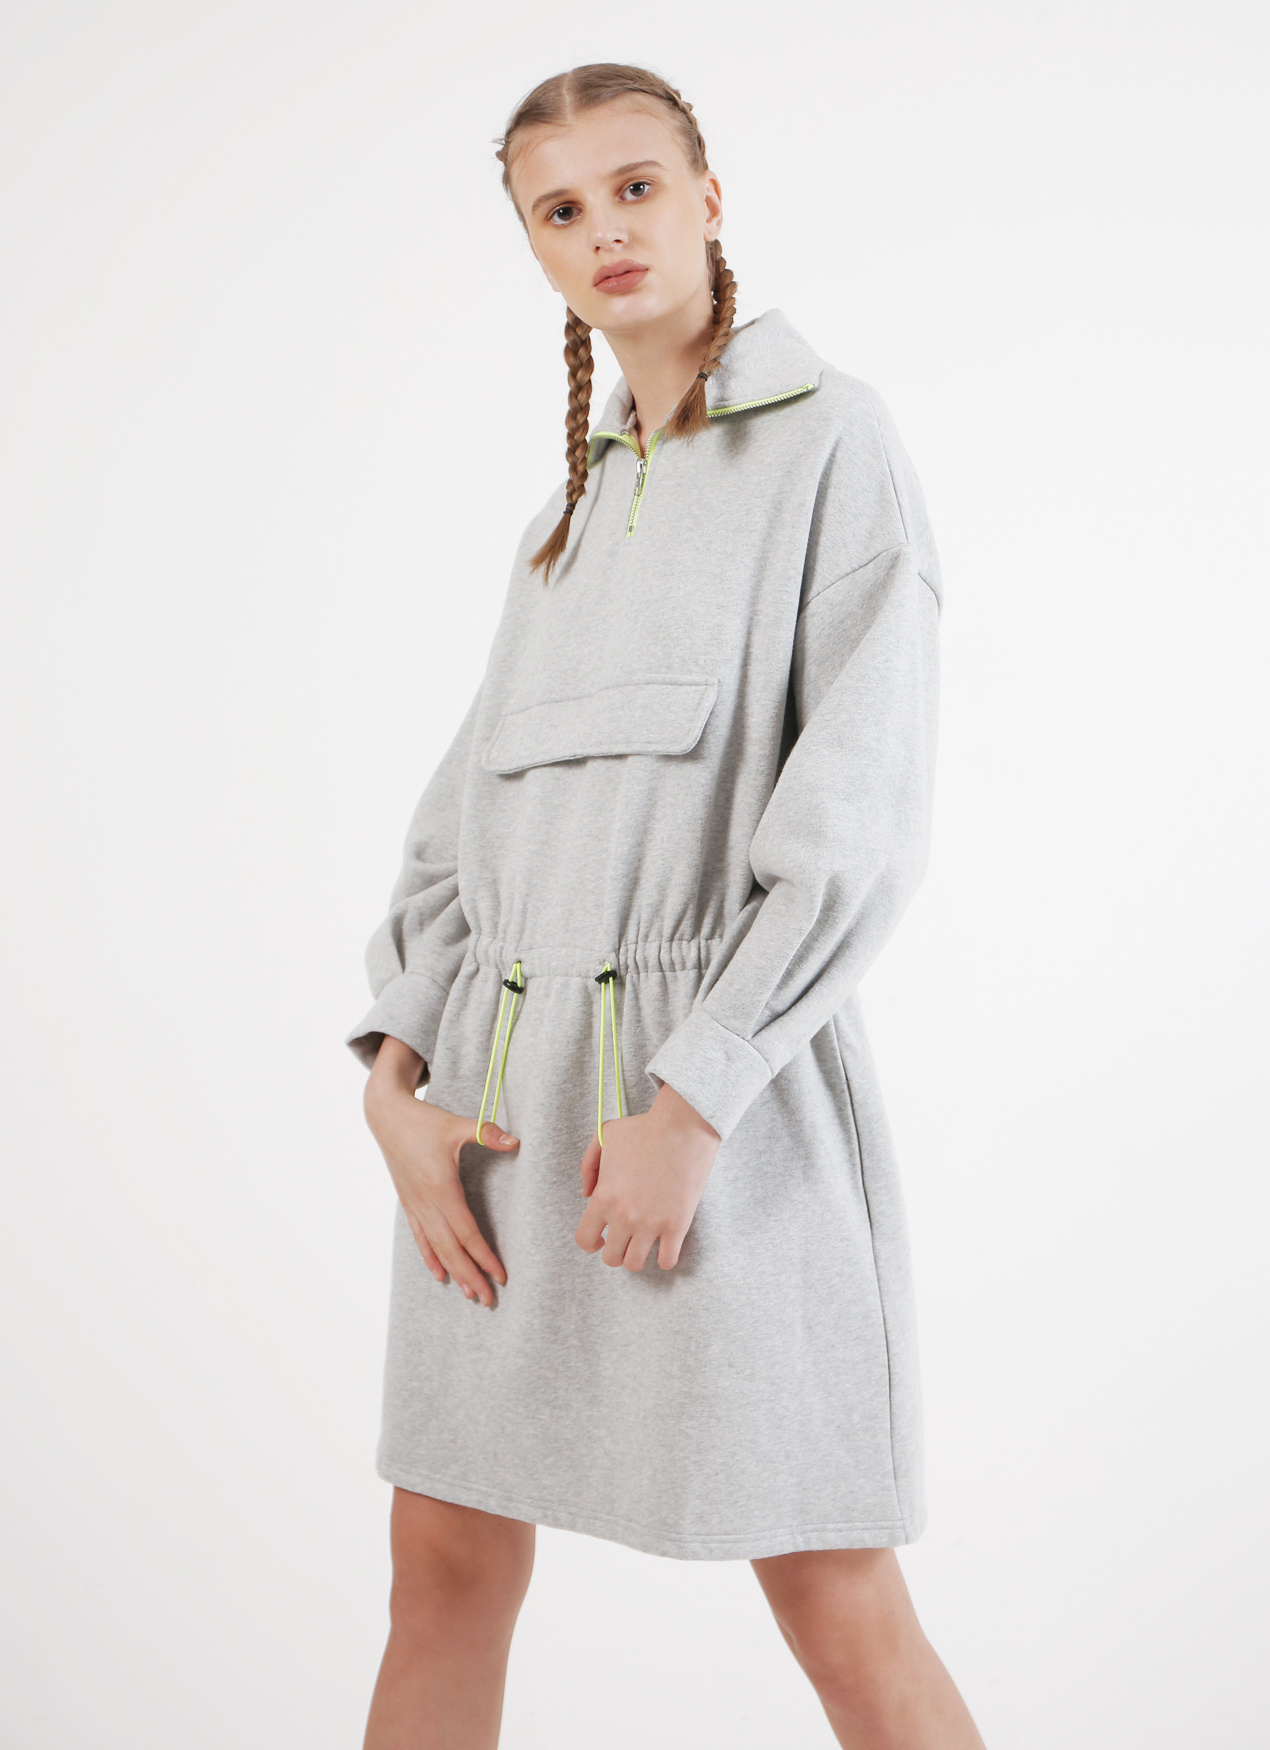 BOWN Alicia Dress - Gray